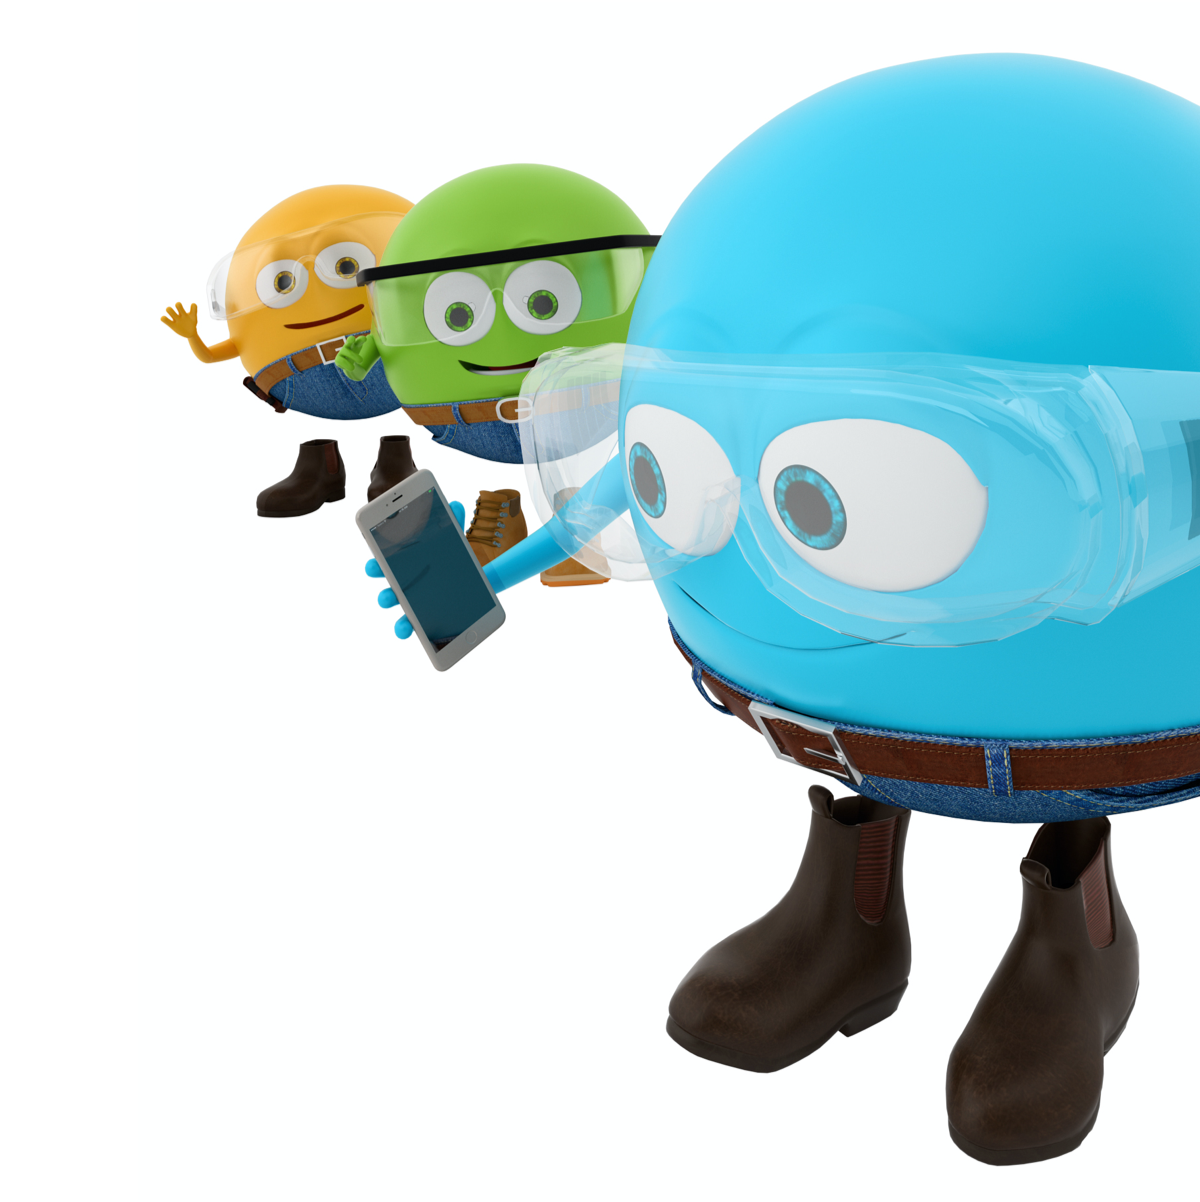 Simply Energy brand mascots holding a phone